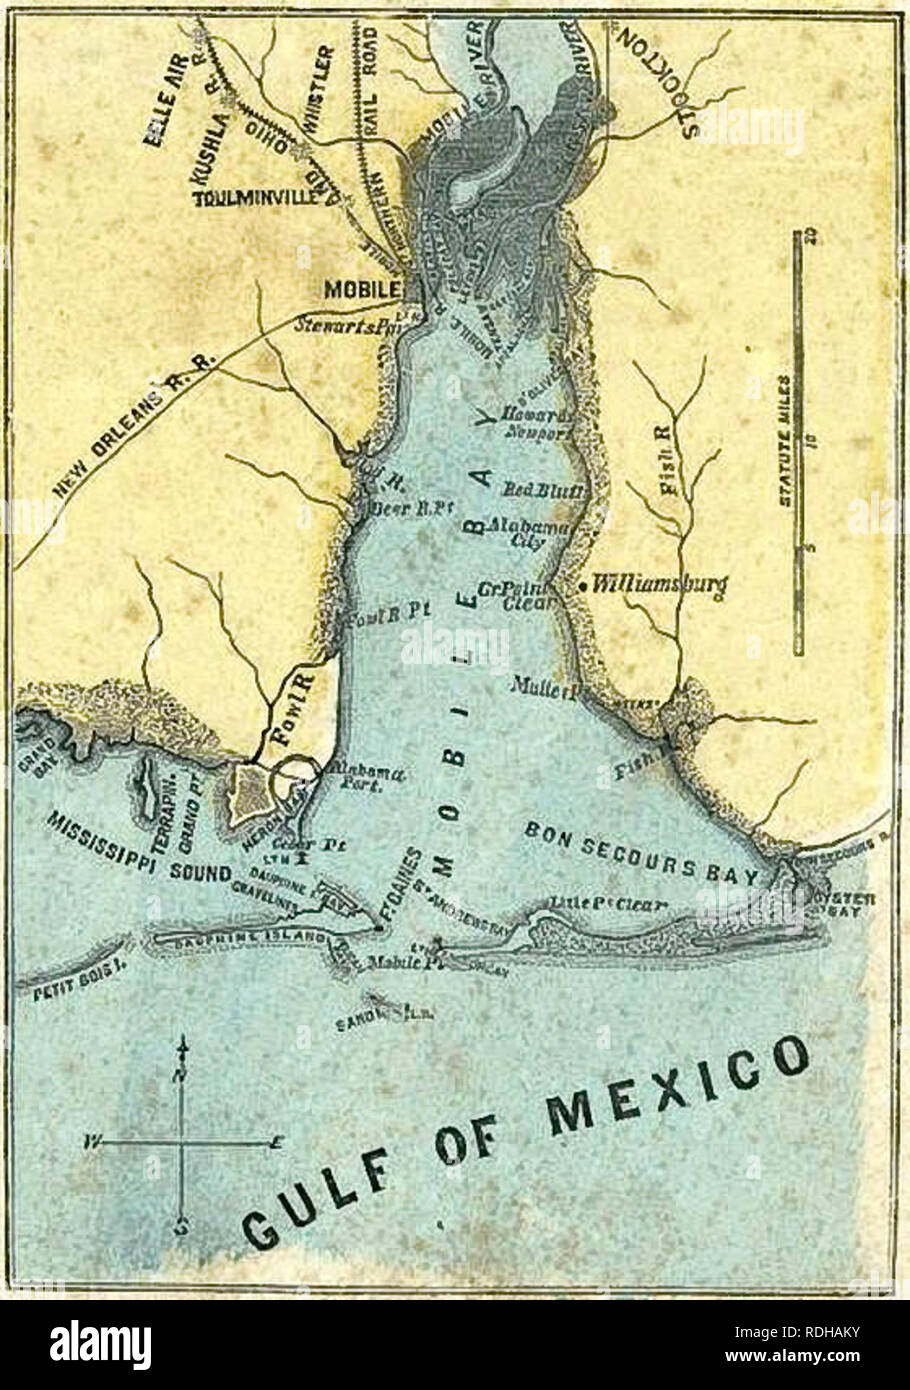 Map of Mobile Bay, 1861: shows Fort Gaines (lower center) on Dauphin Dauphin Island Map on